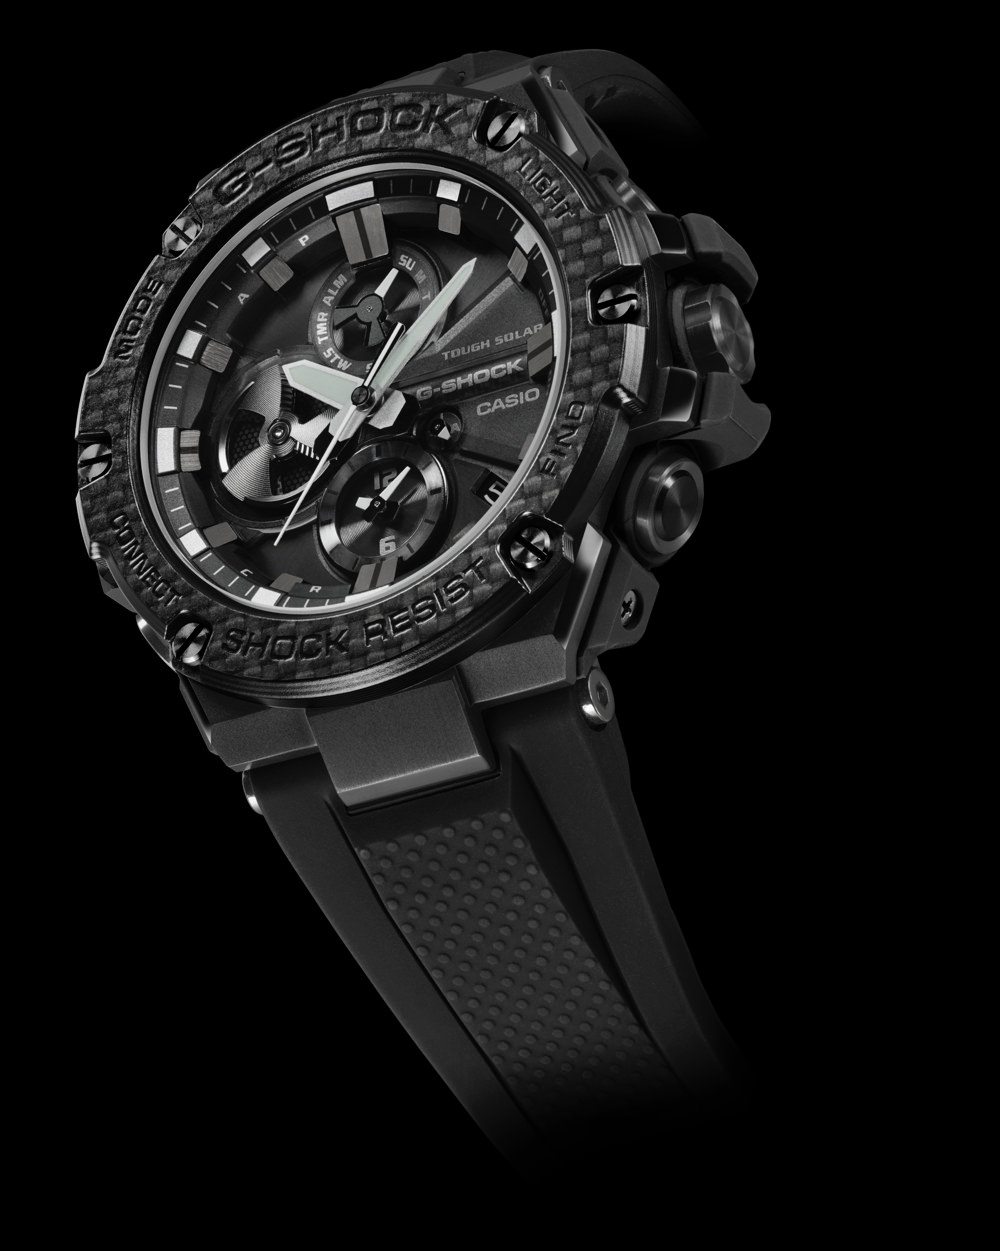 The G-SHOCK G-STEEL GSTB100X-1A timepiece